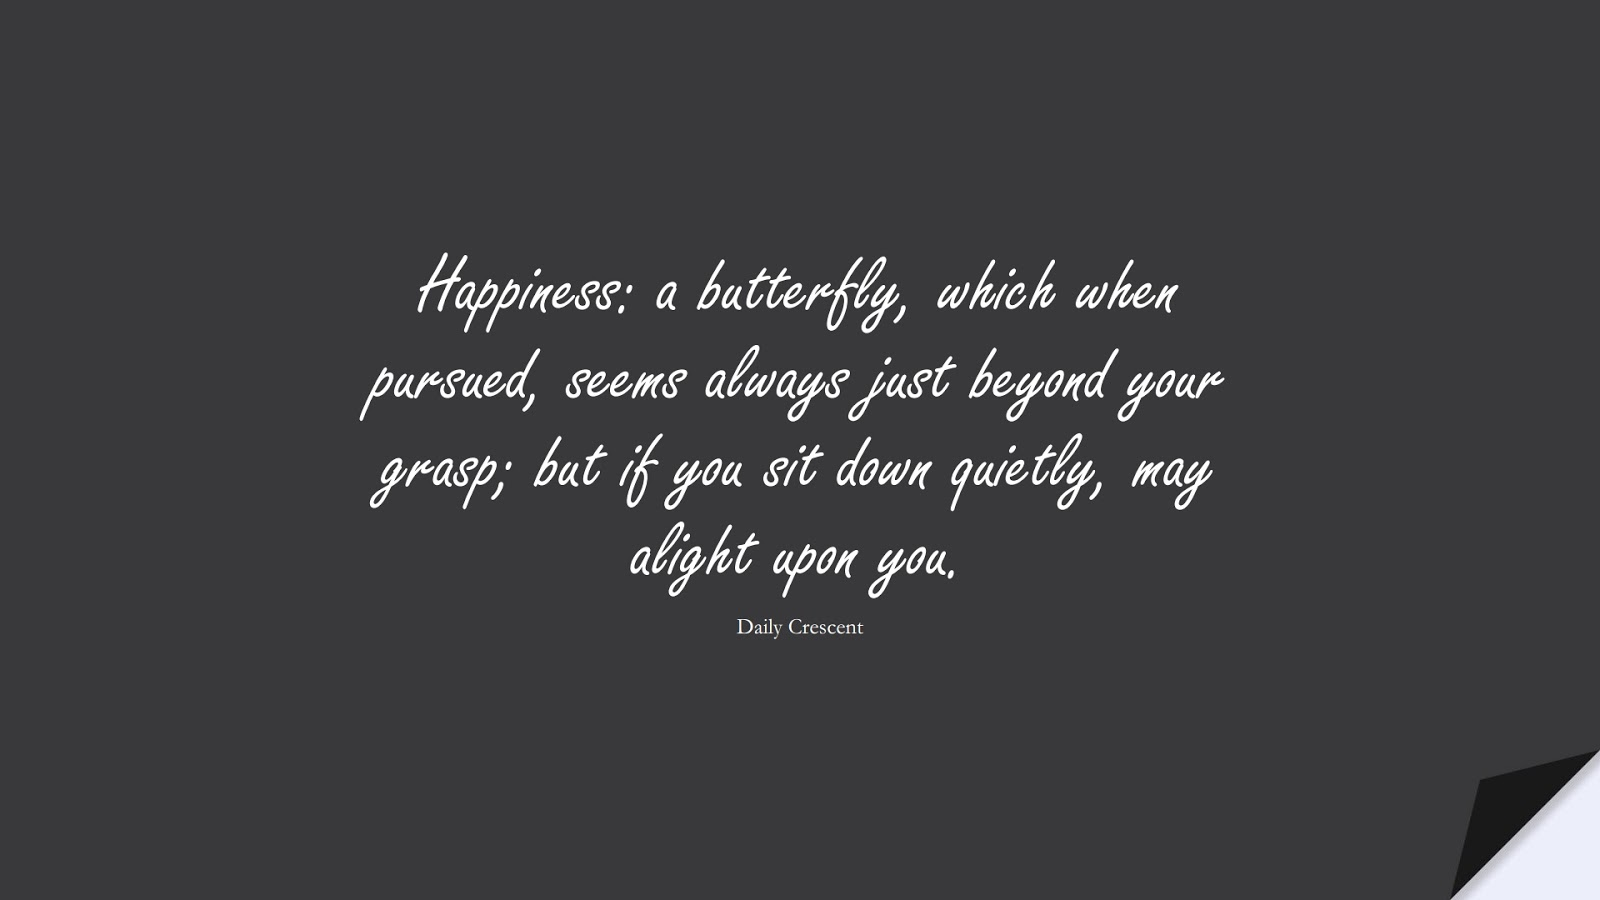 Happiness: a butterfly, which when pursued, seems always just beyond your grasp; but if you sit down quietly, may alight upon you. (Daily Crescent);  #HappinessQuotes